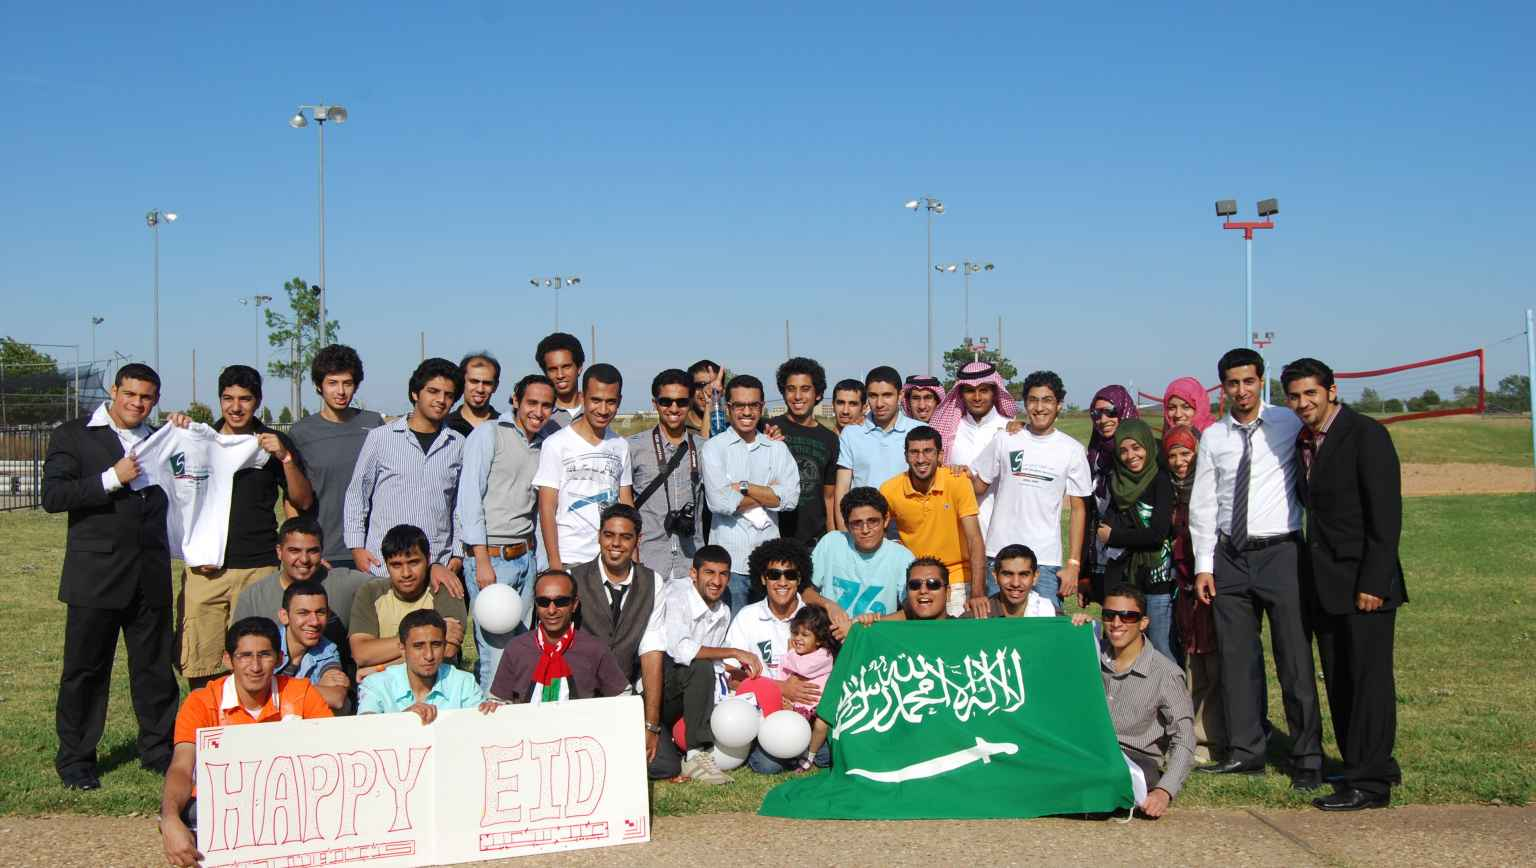 International students and faculty celebrating Eid